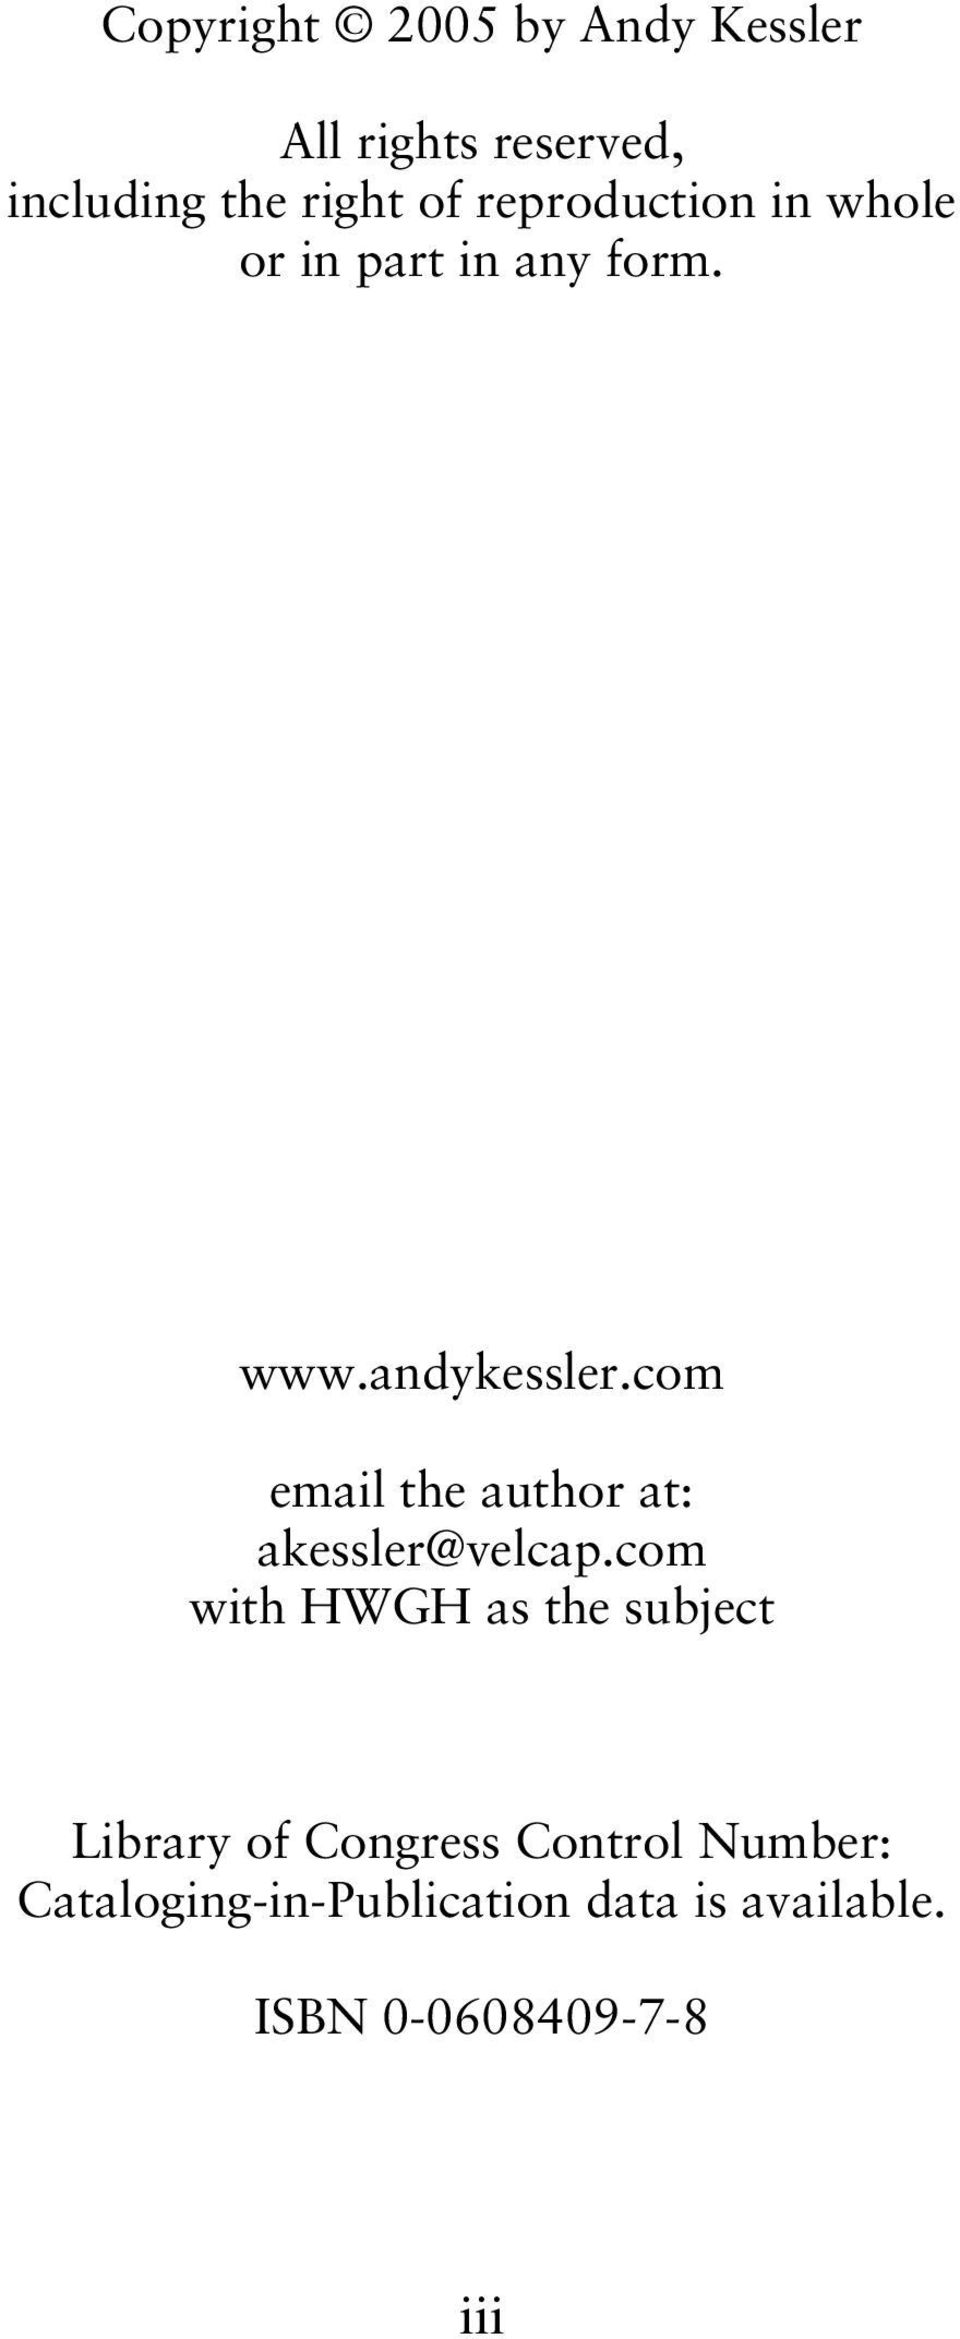 com email the author at: akessler@velcap.